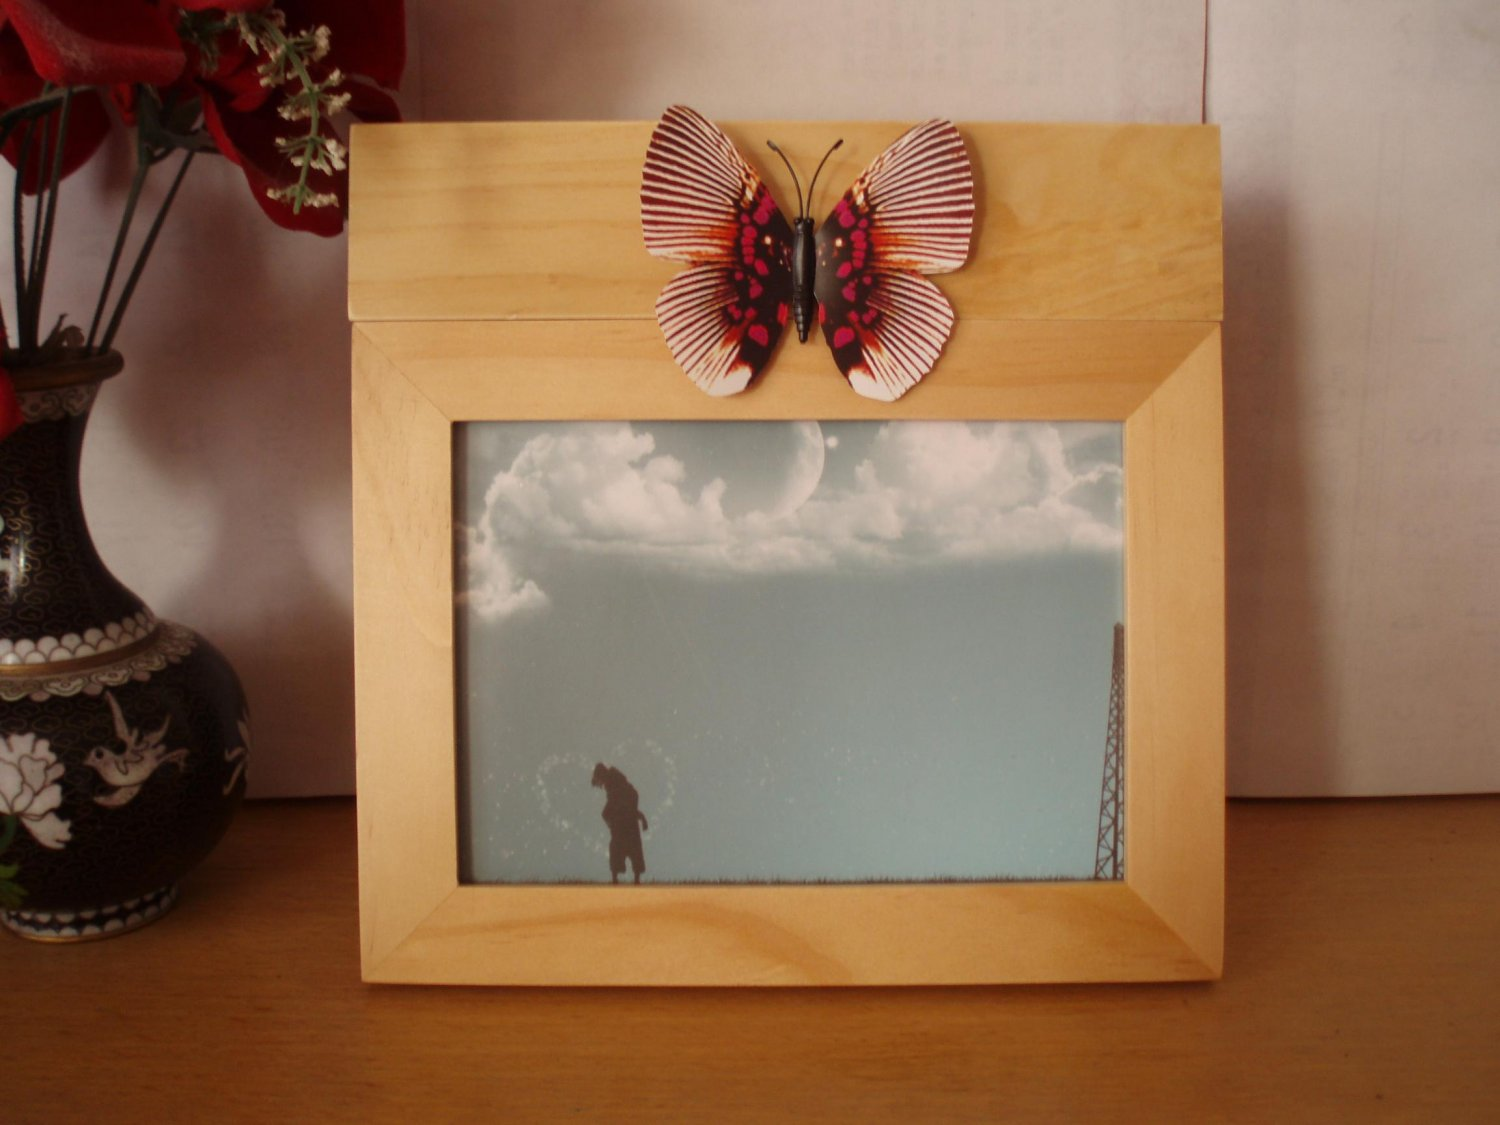 2Pcs.Changeable in Shape 5'x7' Wood Photo Frame With Butterfly Decoration